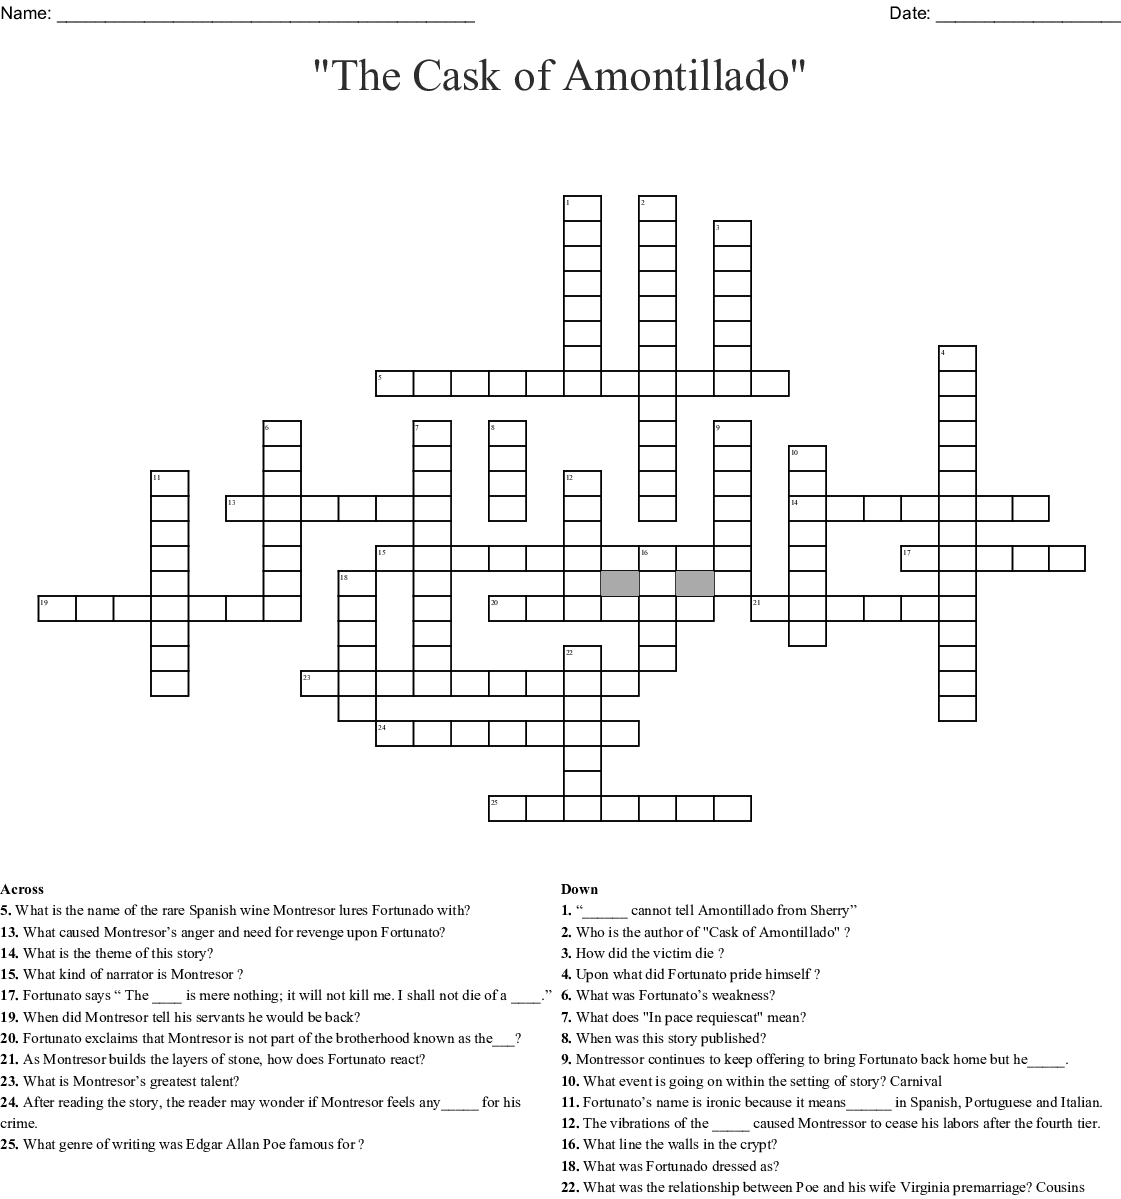 """The Cask Of Amontillado Worksheet   Shared by   Szzljy besides Cask of Amontillado by Edgar Allan Poe questions  literary elements moreover Cask of Amontillado   Mrs  Bradley's Clroom in addition Critical essay the cask of amontillado in addition  likewise The Cask Of Amontillado Worksheet Elegant Systematic Review Of moreover The Cask of Amontillado"""" by Edgar Allan Poe additionally The Cask of Amontillado furthermore Edgar Allan Poe Worksheets   Siteraven also  likewise  besides The Cask of Amontillado Worksheet for 9th Grade   Lesson Pla as well Cask of Amontillado Foreshadowing and Irony besides The Cask Of Amontillado Plot Diagram – Article Summary Worksheet besides The Cask of Amontillado  Crossword   WordMint together with Stylistic ysis of the Cask of Amontillado. on the cask of amontillado worksheet"""